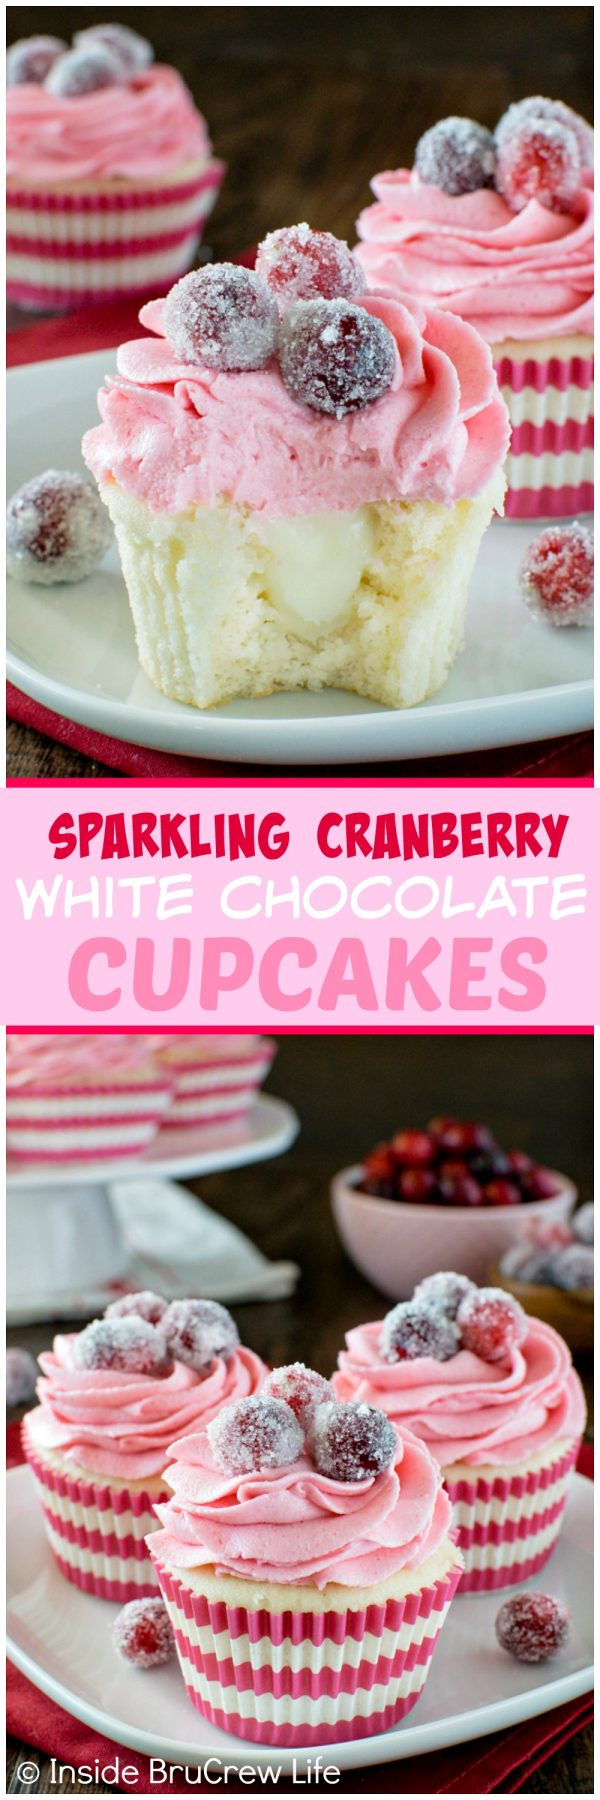 Sparkling Cranberry White Chocolate Cupcakes - a hidden creamy center & fresh berry frosting makes these cupcakes a fun recipe to